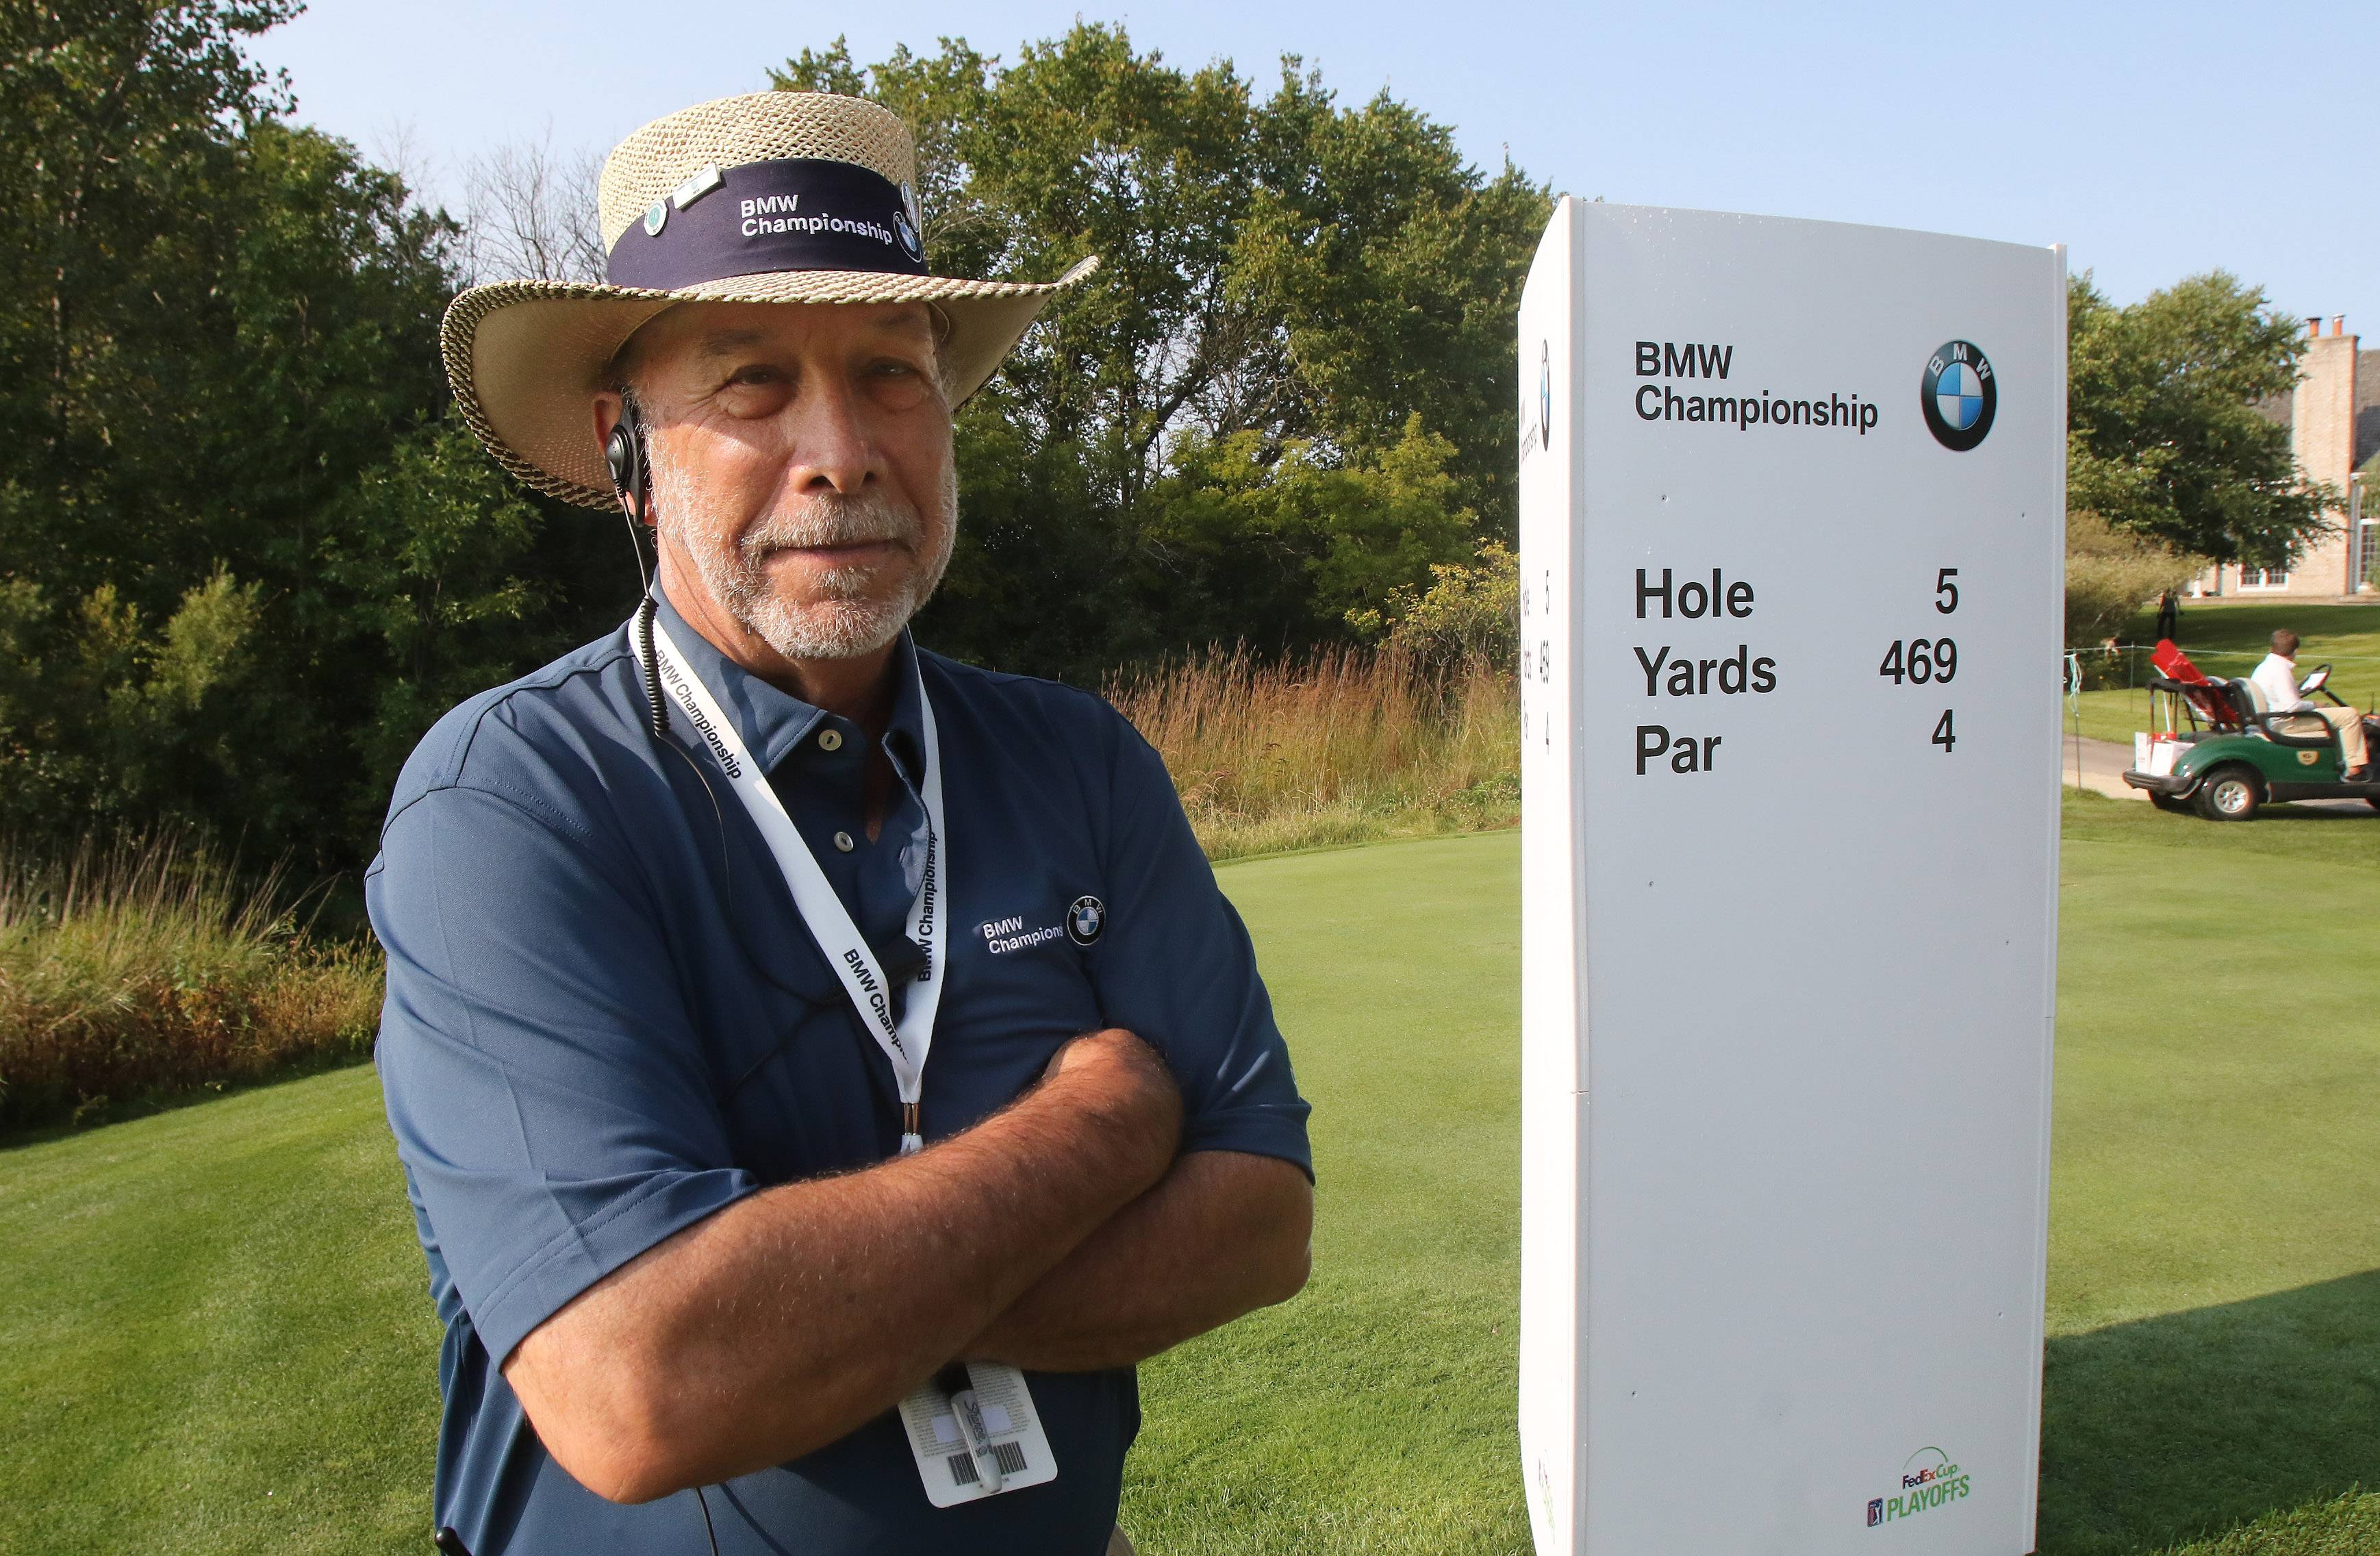 Volunteer Ronald Goldman works as hole captain during Tuesday's practice round for the BMW Championship at Conway Farms Golf Club in Lake Forest. Goldman, of Buffalo Grove, worked two previous BMW tournaments as a hole marshal.